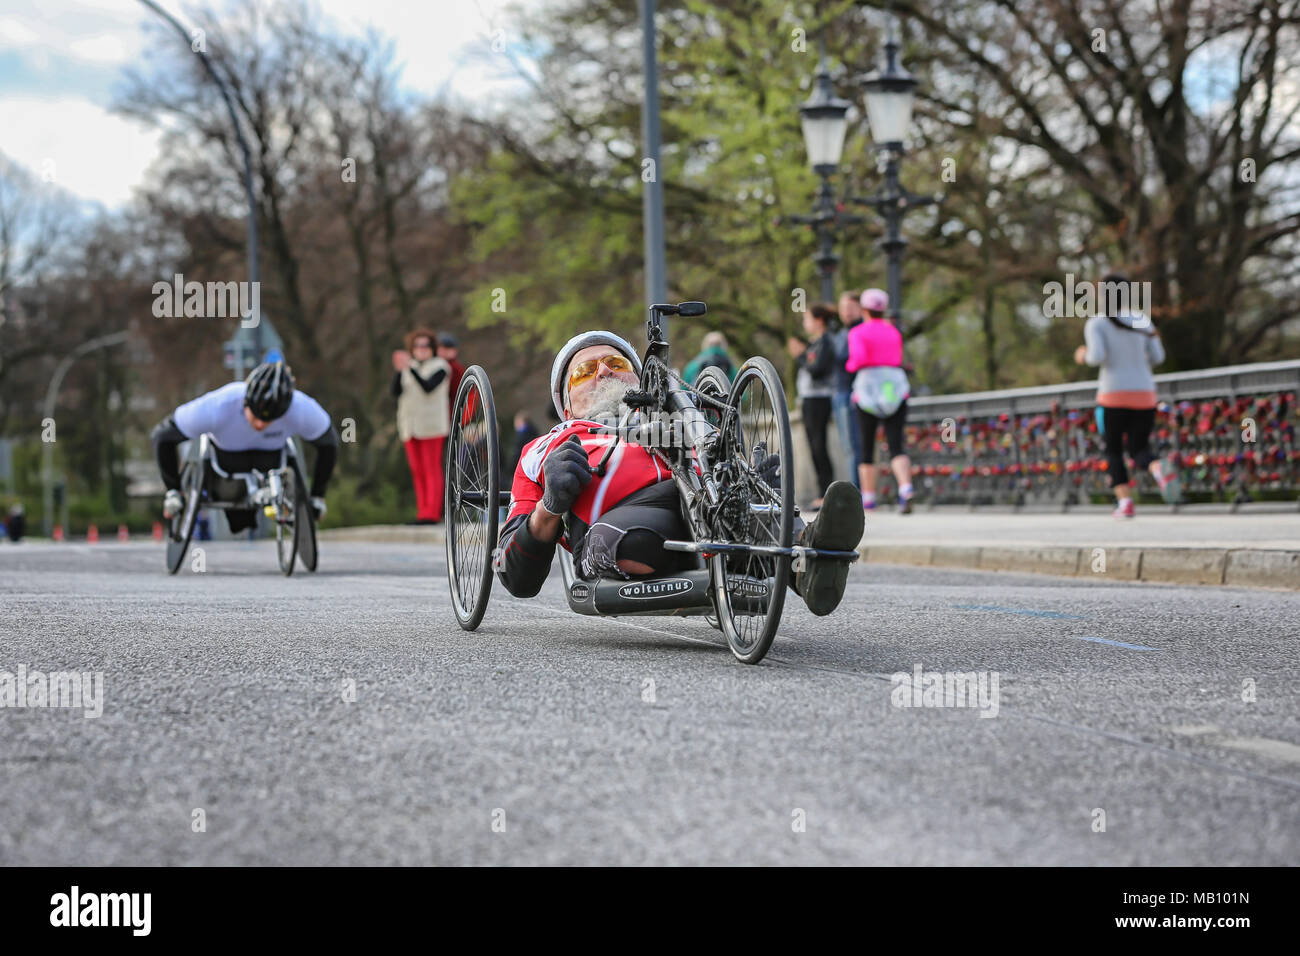 Handbikers at the Hamburg-Marathon - Stock Image